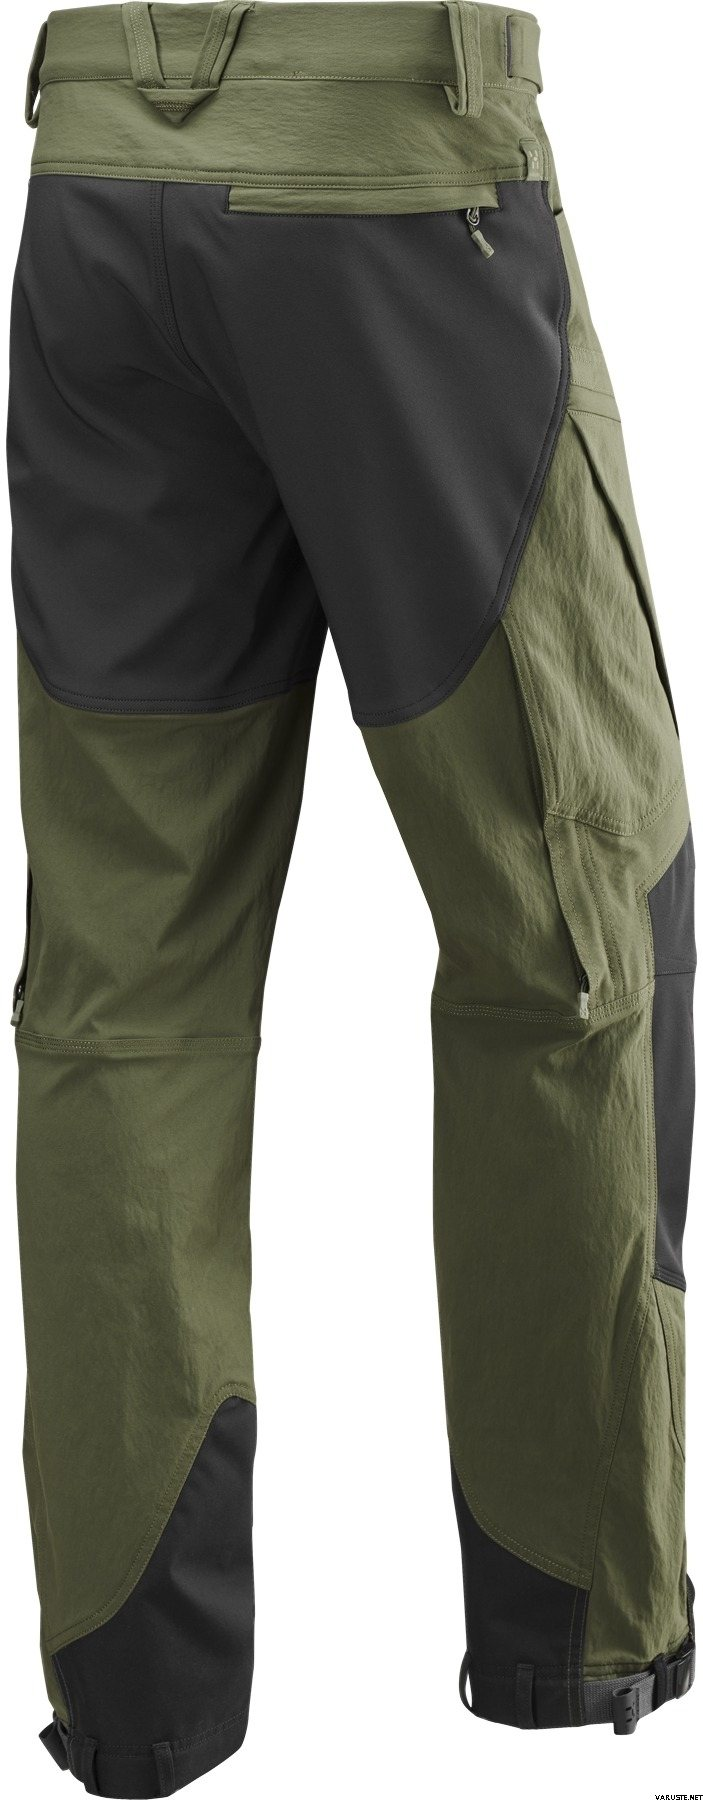 Haglofs Rugged Ii Mountain Pant Men Men S Trekking Pants Varuste Net English